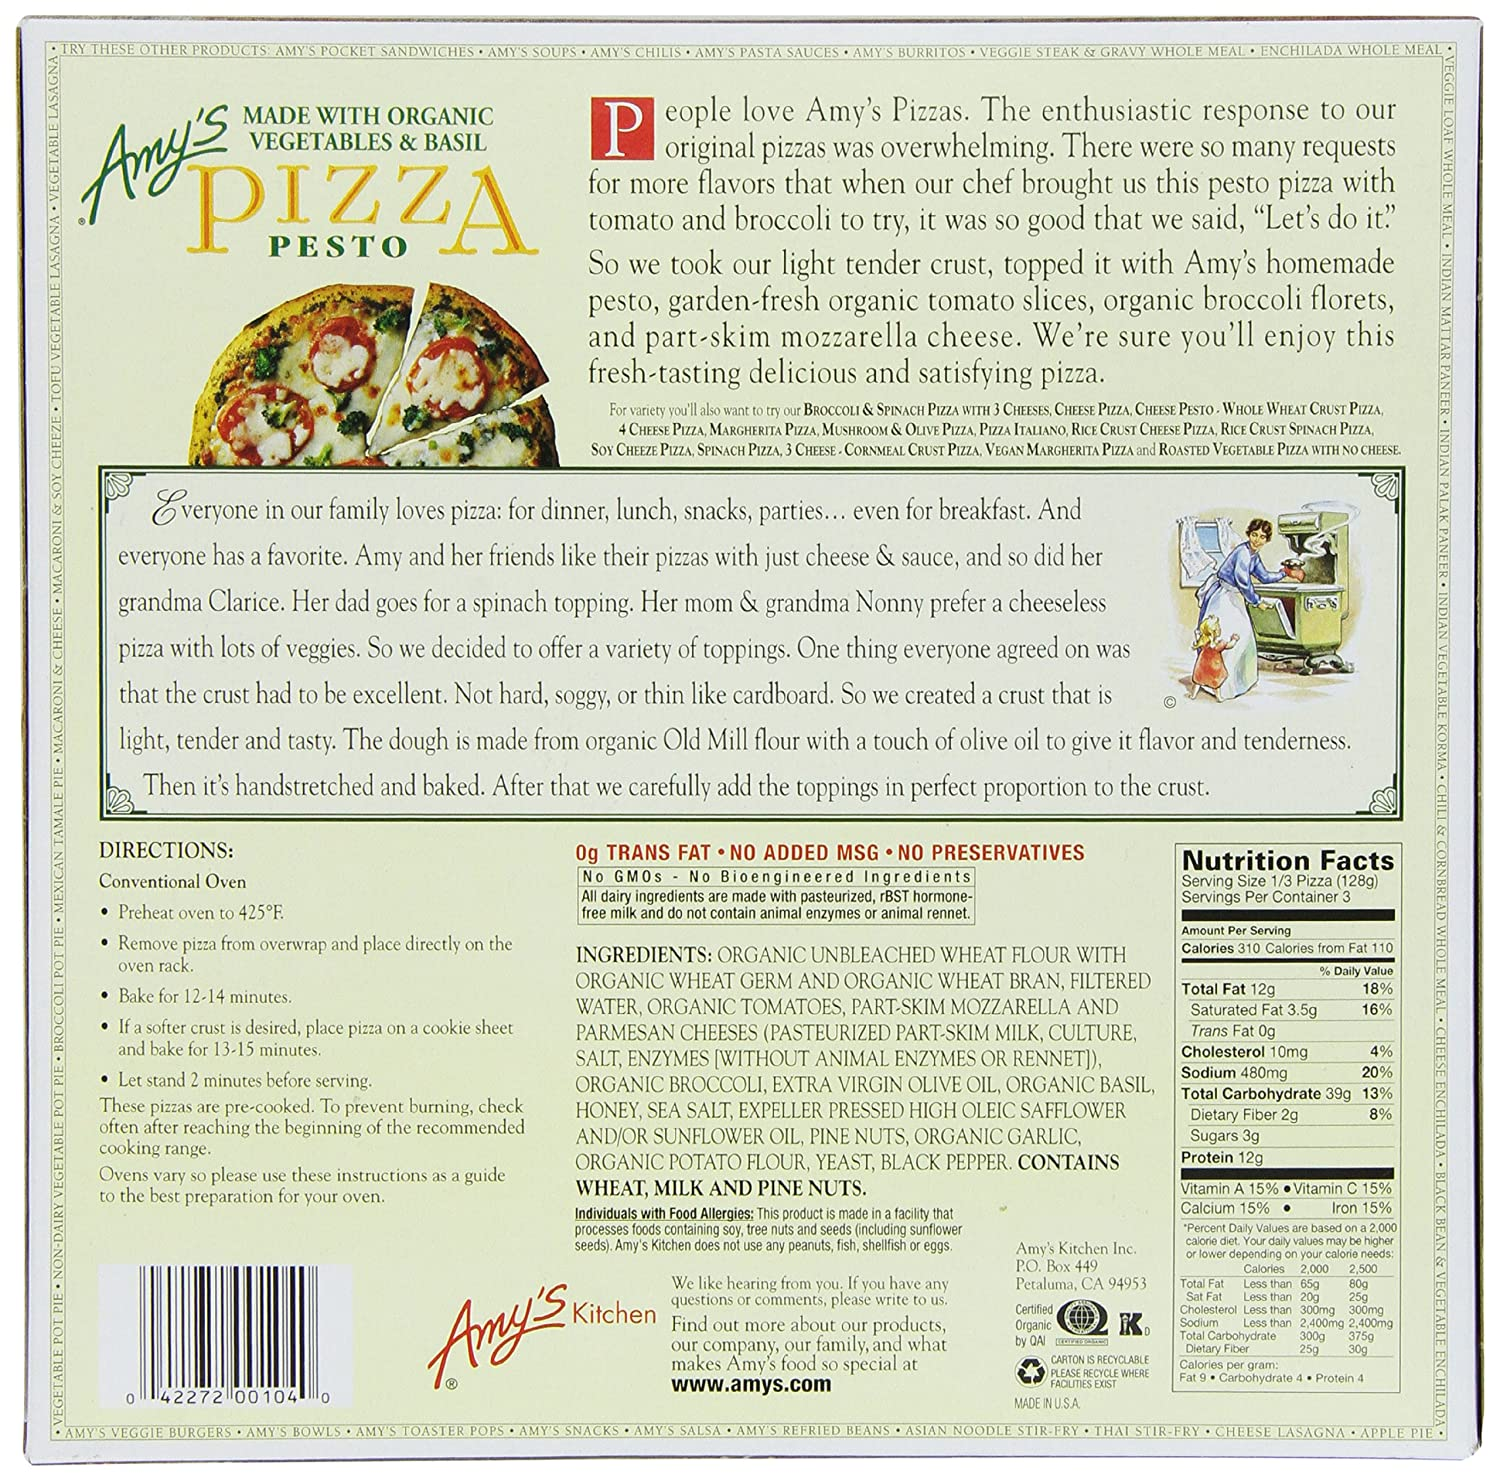 Amys Pizzas, Pesto Pizza, 13.5 Ounce (Frozen): Amazon.com: Grocery & Gourmet Food